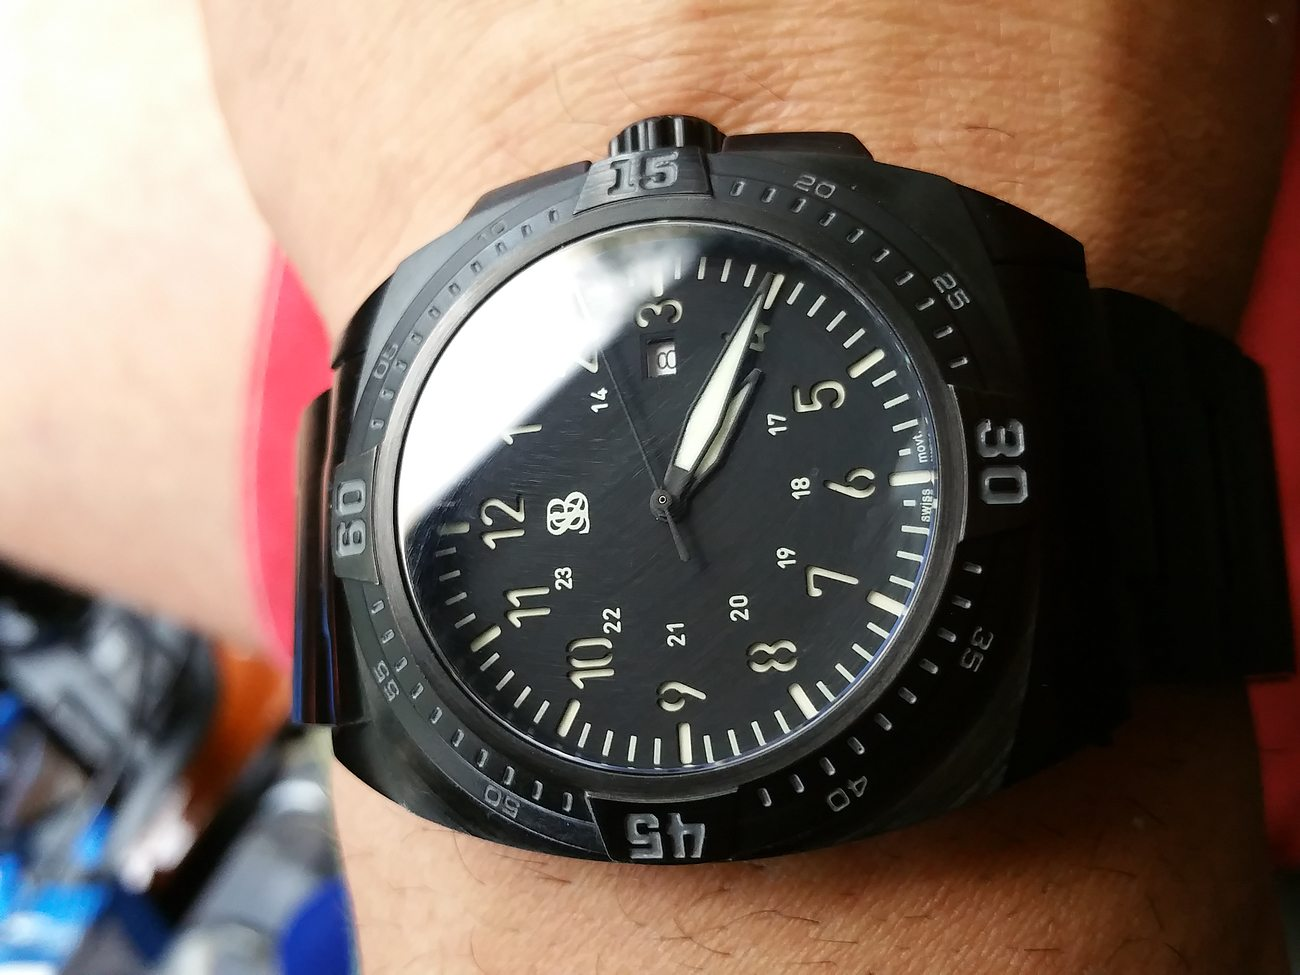 SANS-13 Evolution Watch By Smith&Bradley